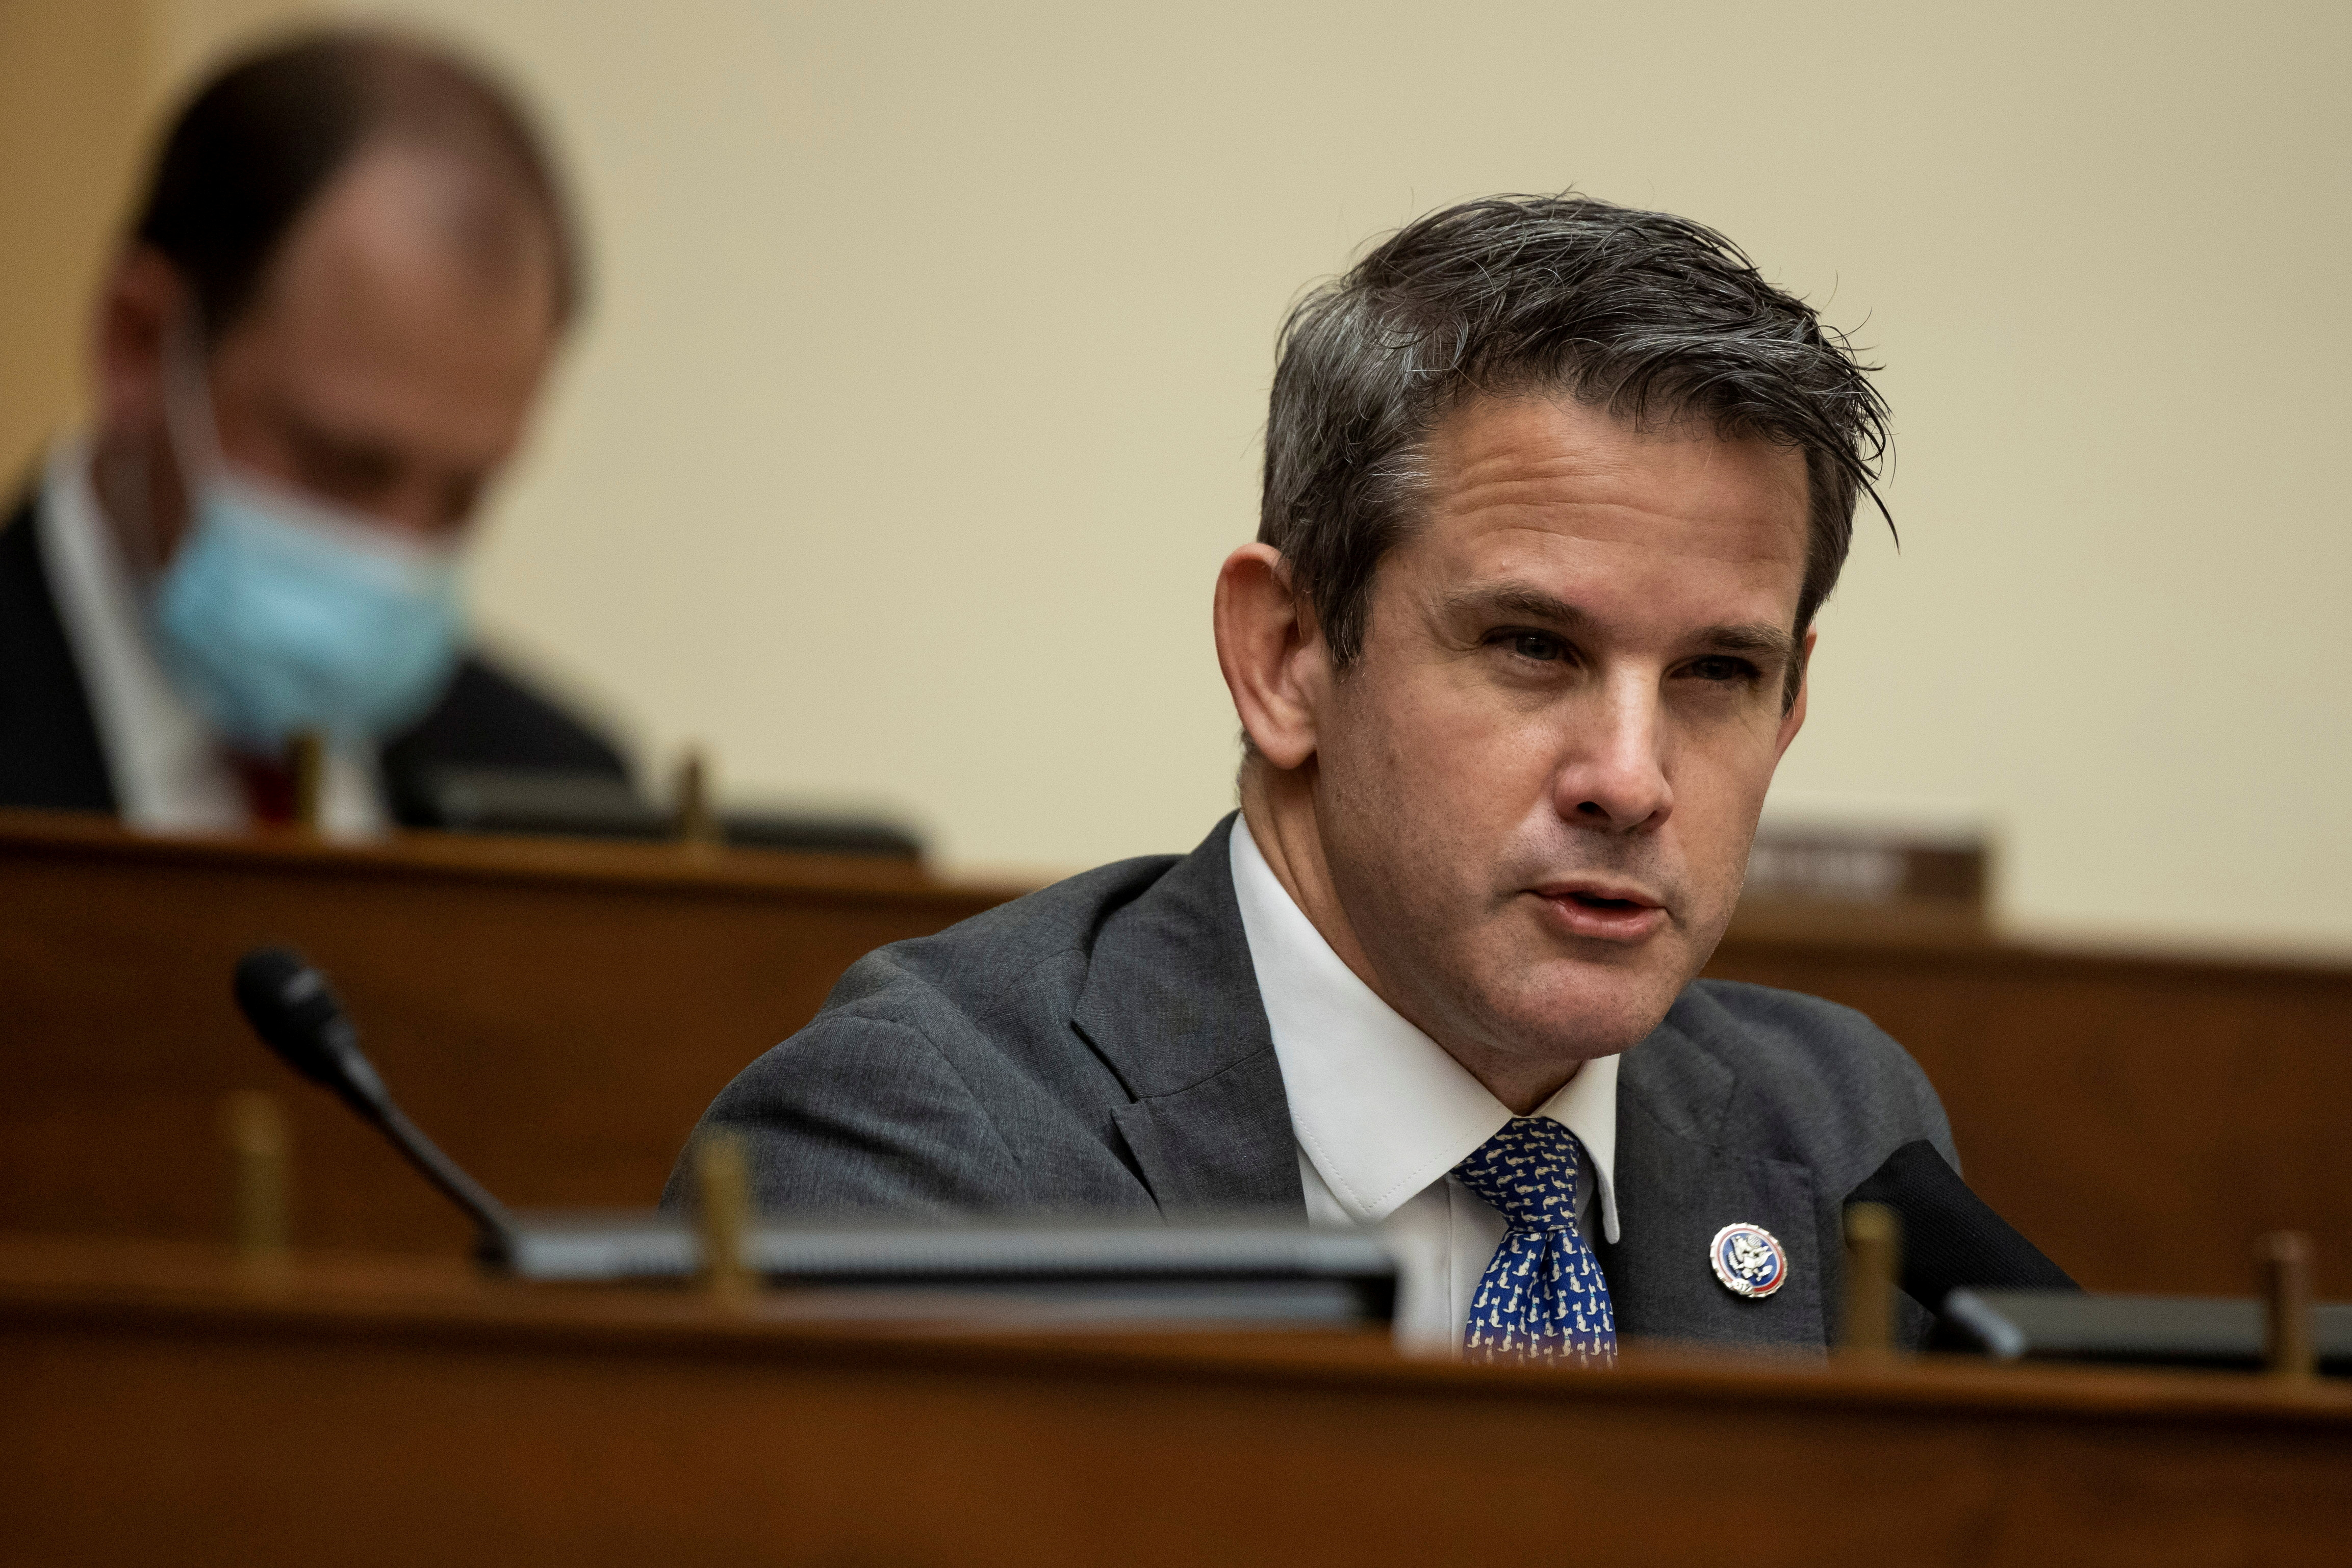 Representative Adam Kinzinger (R-IL) speaks during a House Foreign Affairs Committee hearing in Washington, D.C., U.S., March 10, 2021. Ting Shen/Pool via REUTERS/File Photo